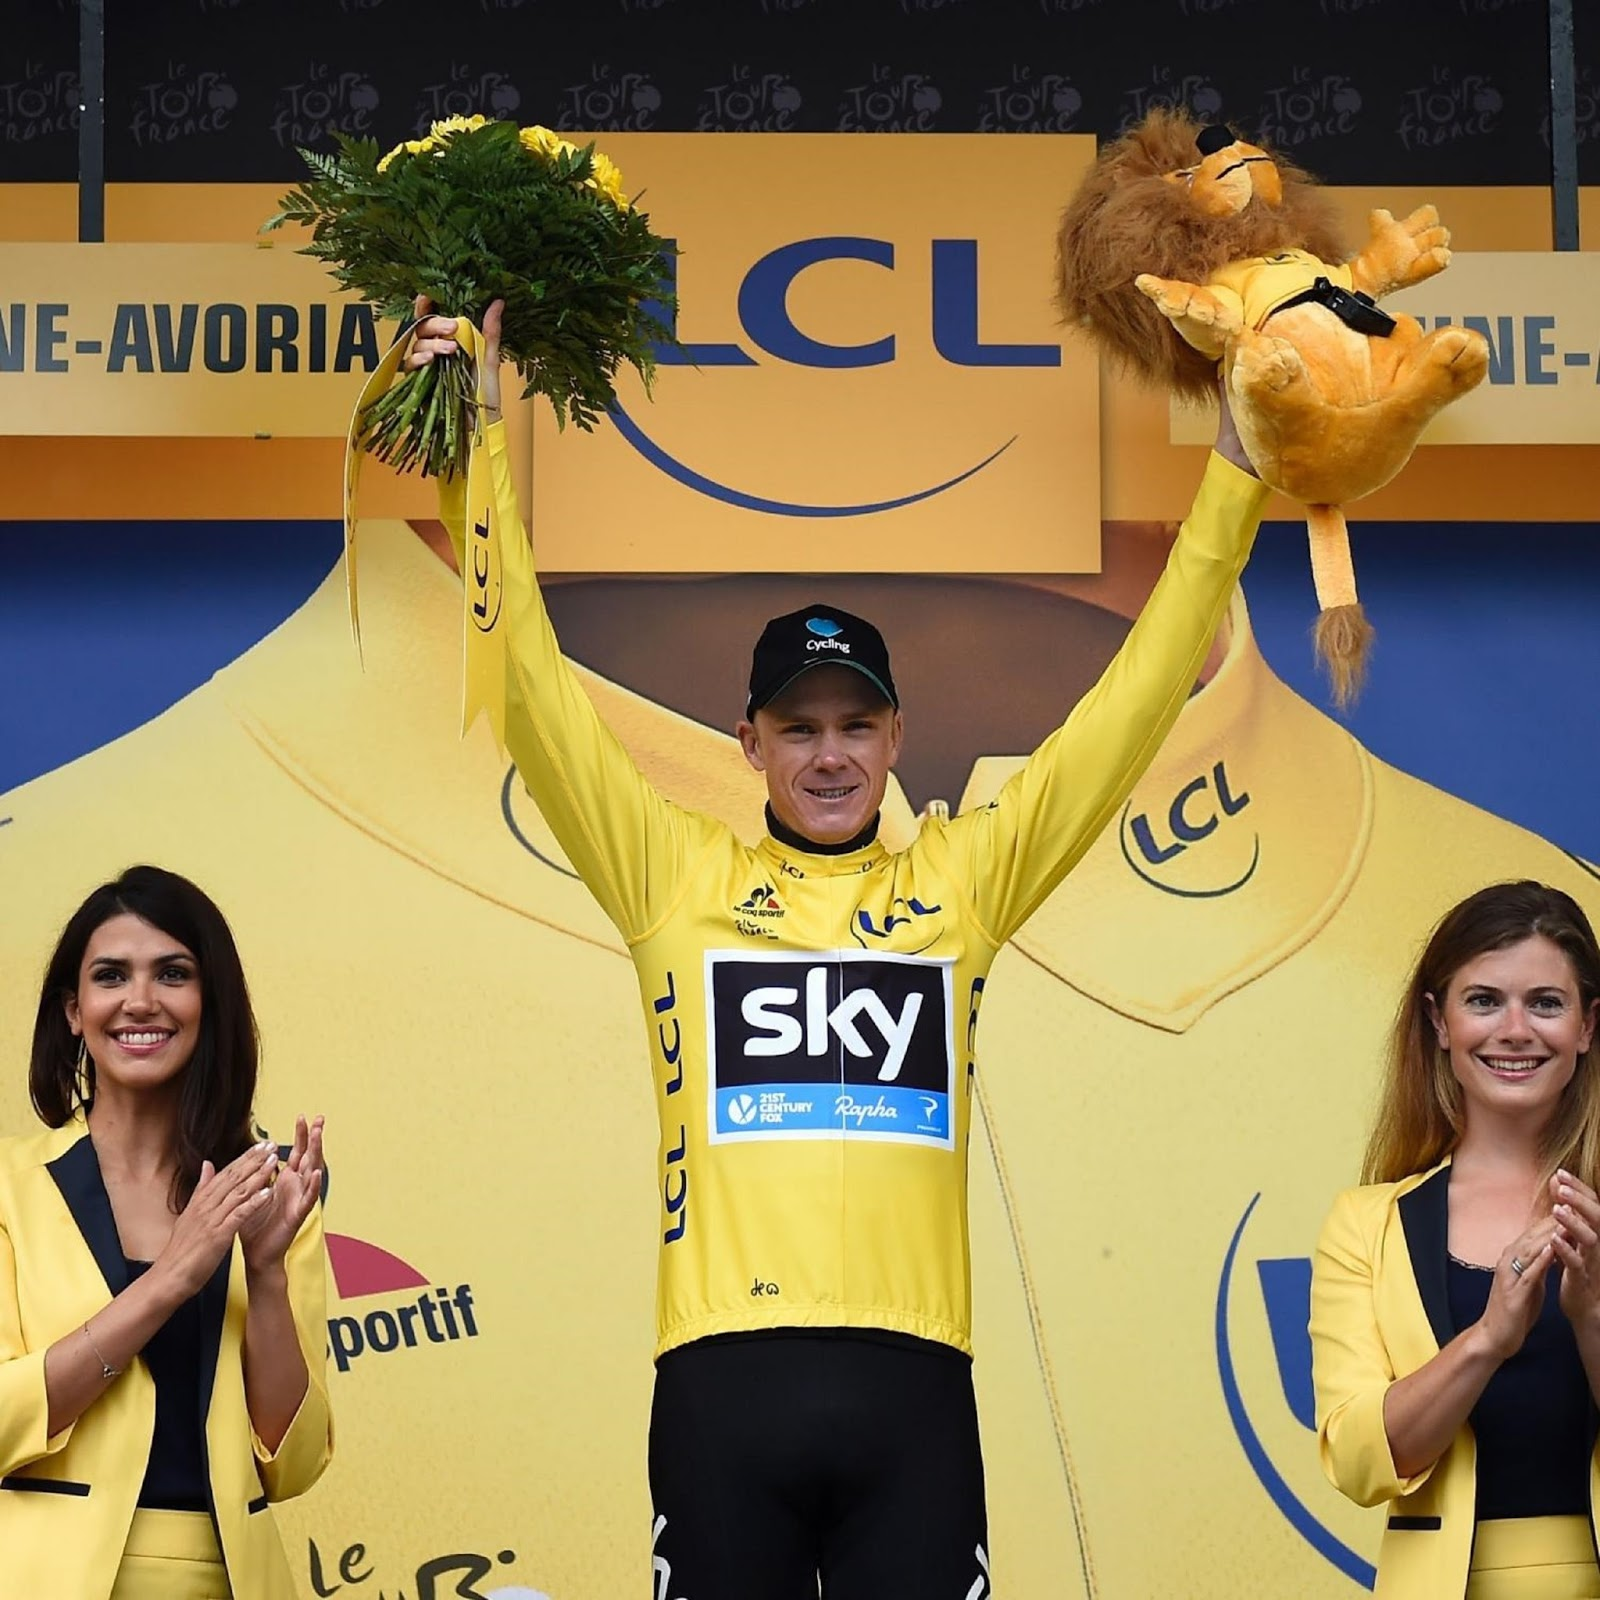 CHRIS FROOME 3